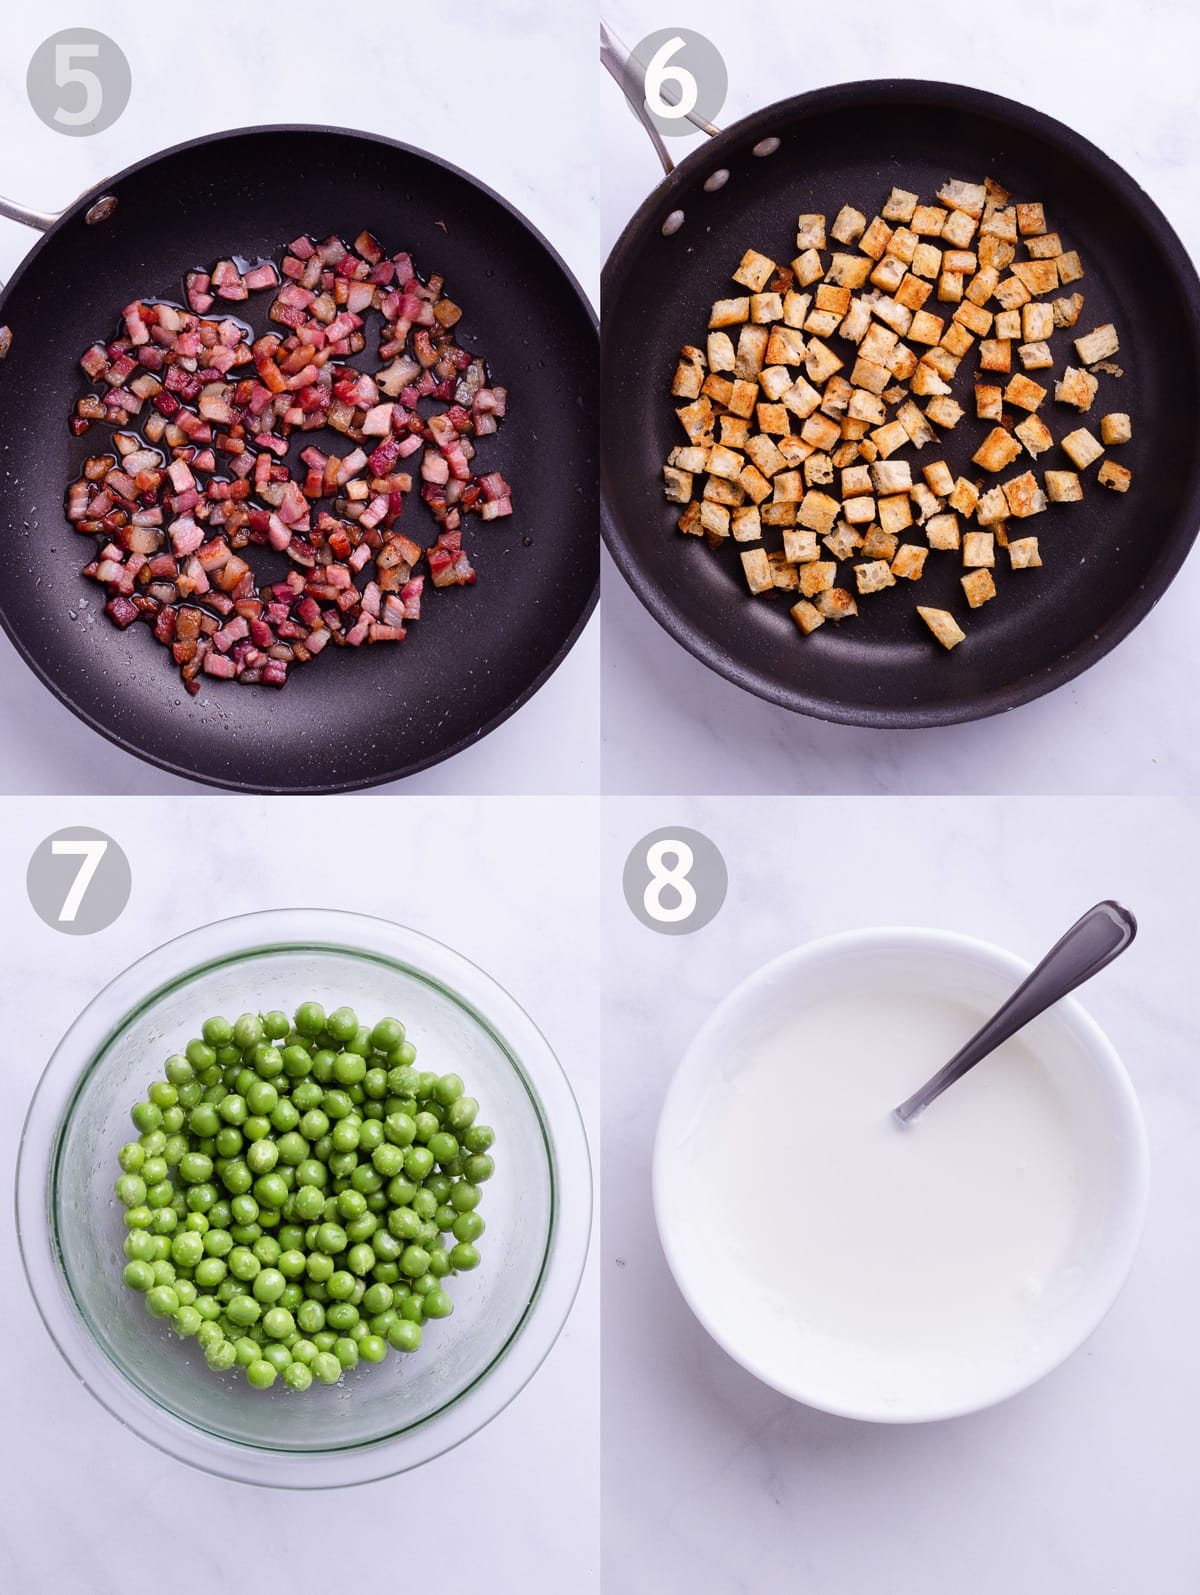 Side-by-side photos of sautéed pancetta, croutons in a pan, a bowl of green peas and a bowl of thinned out yogurt for the toppings.